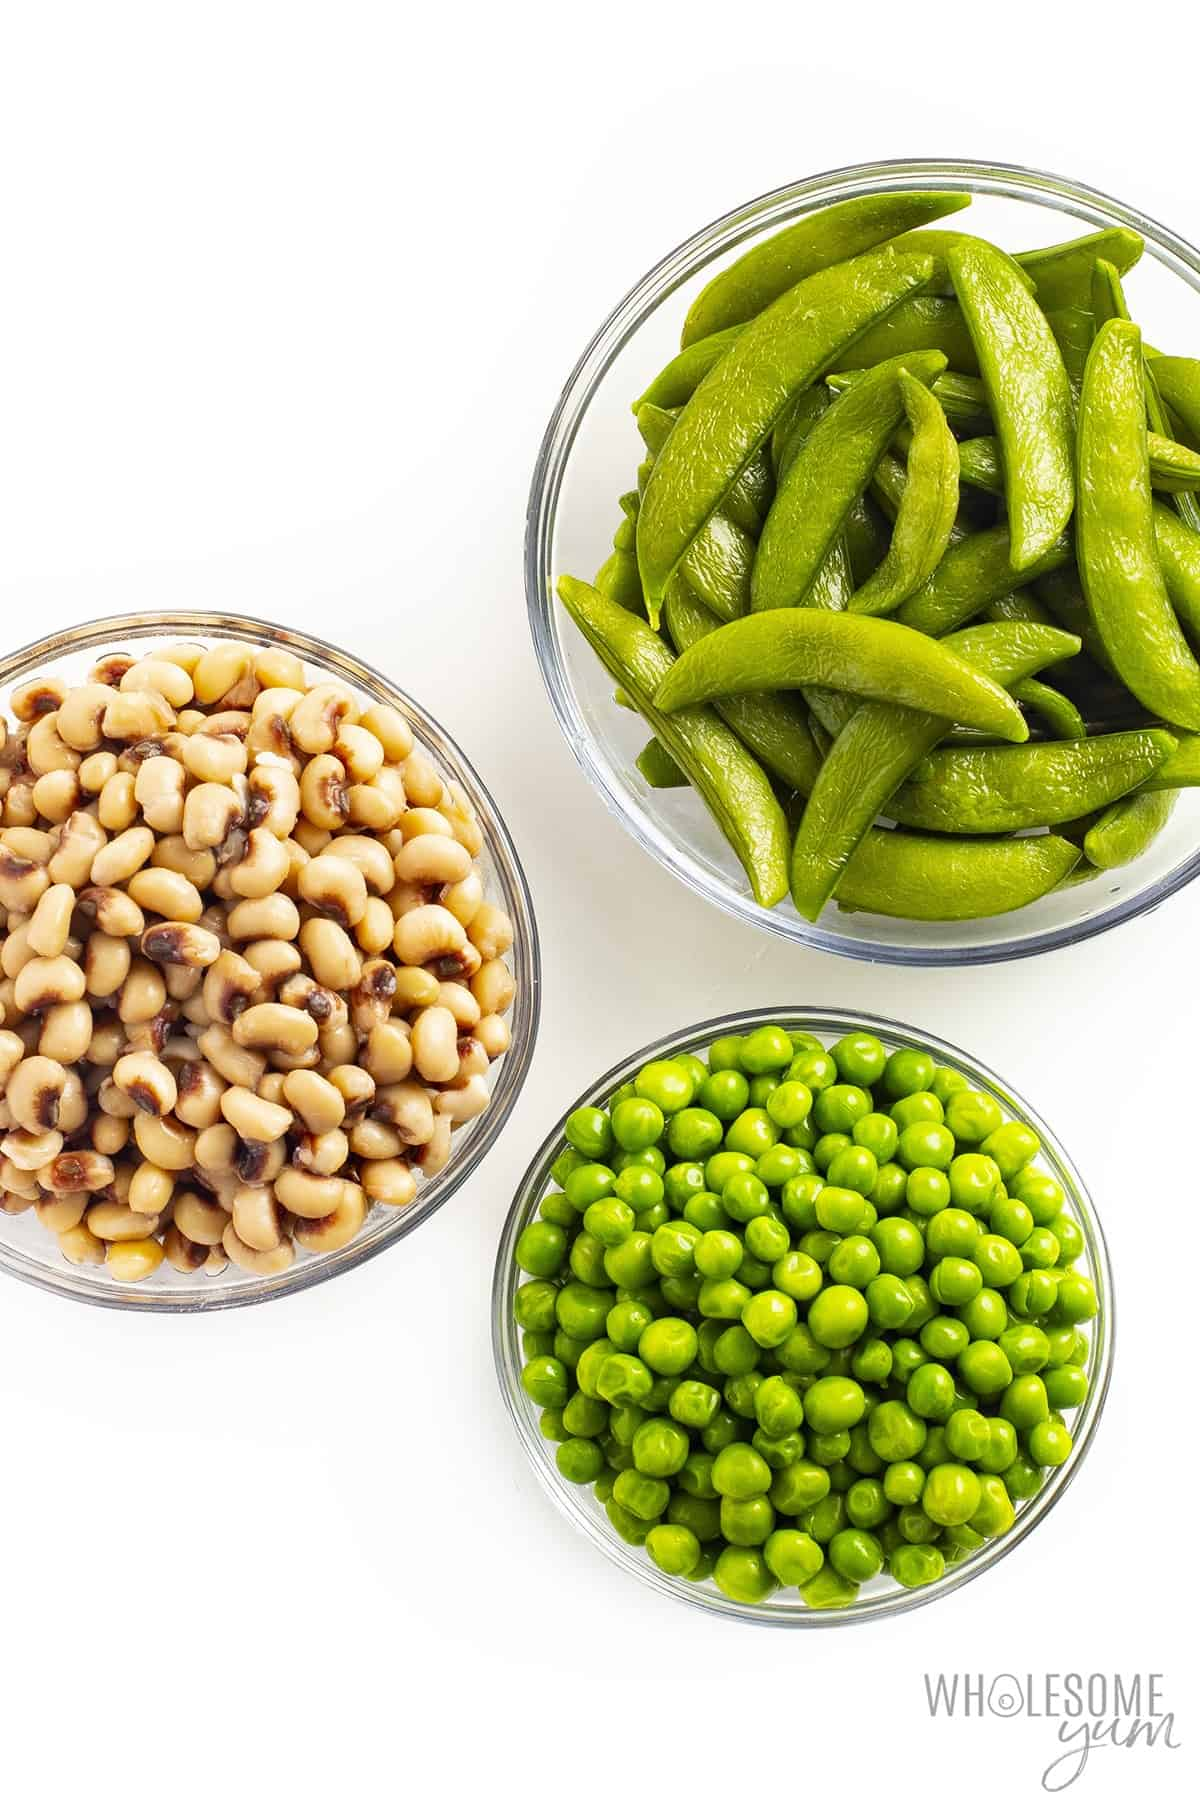 How high are carbs in peas? The carbs in these 3 varieties of peas are too high to be very keto friendly.